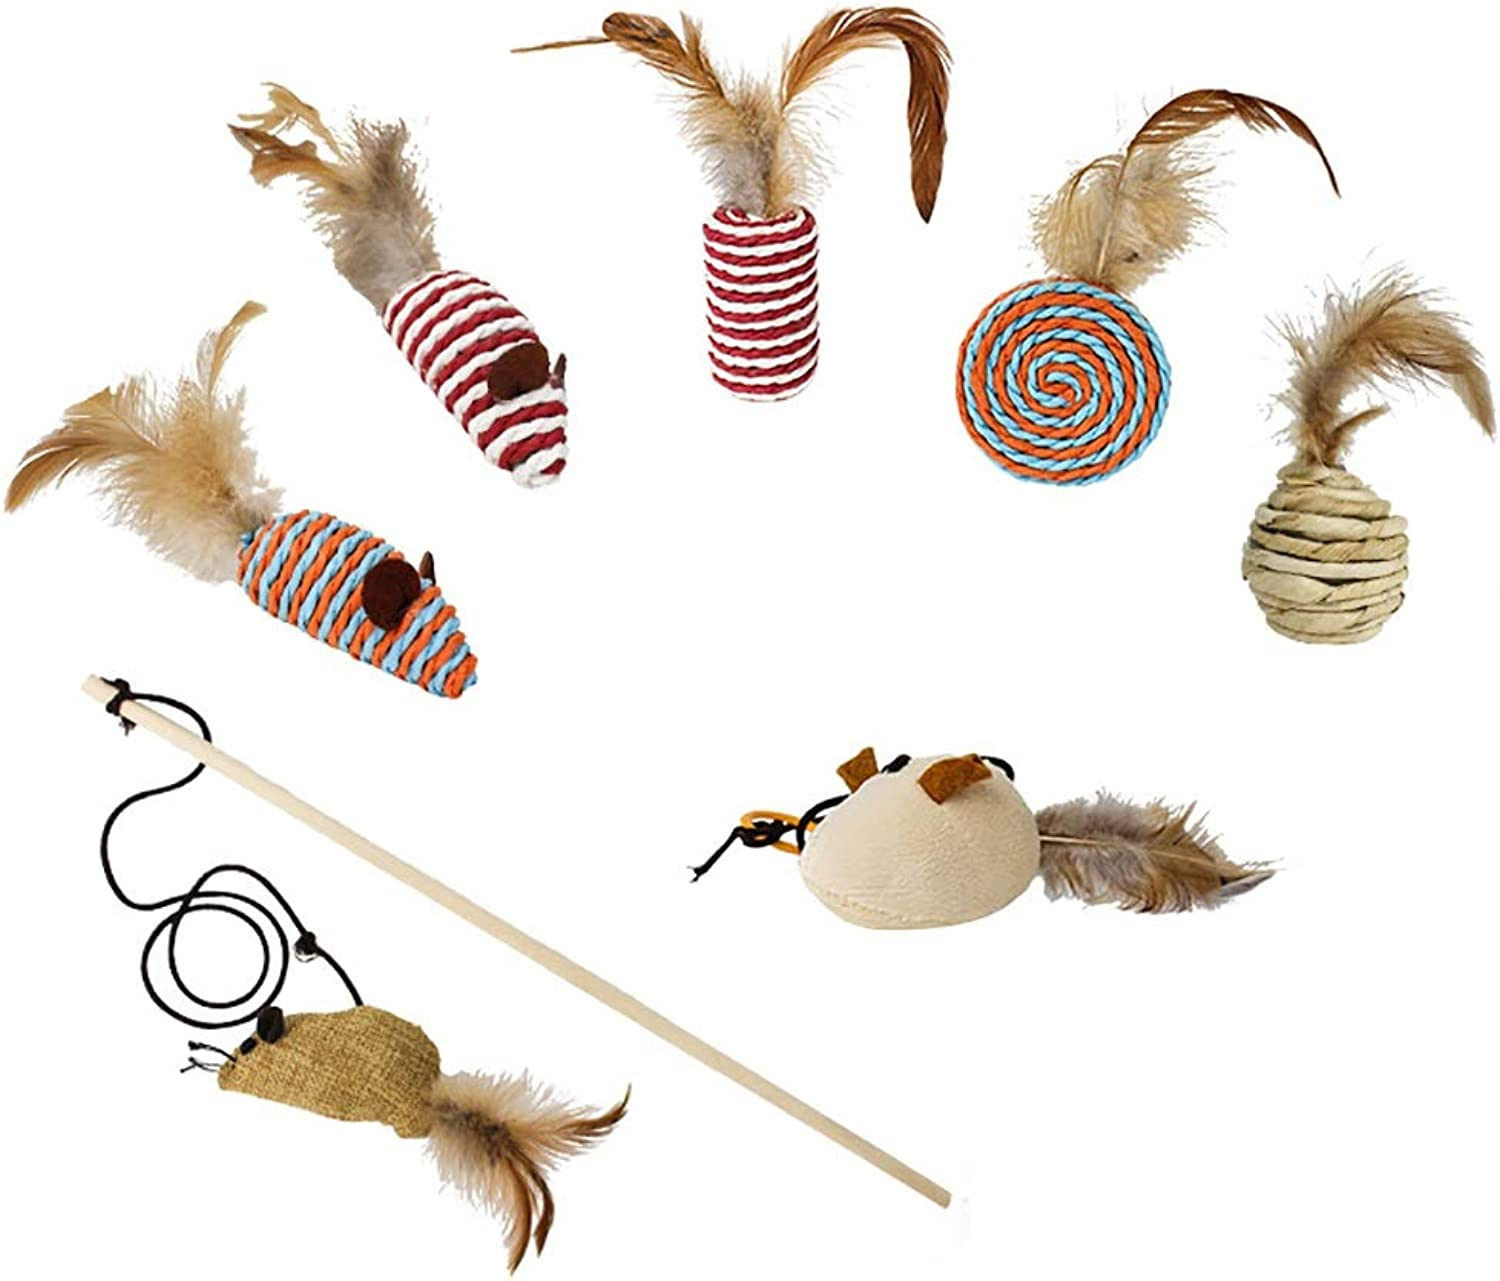 Cat Toy 7 Point Set Cat Jerky Cat Play Feather Toy Mouse Chew Toy Pet Supplies Cat Toy with a Bell Diet Training Stress Relief Exercise Shortage Cancellation 7 Point Set Present